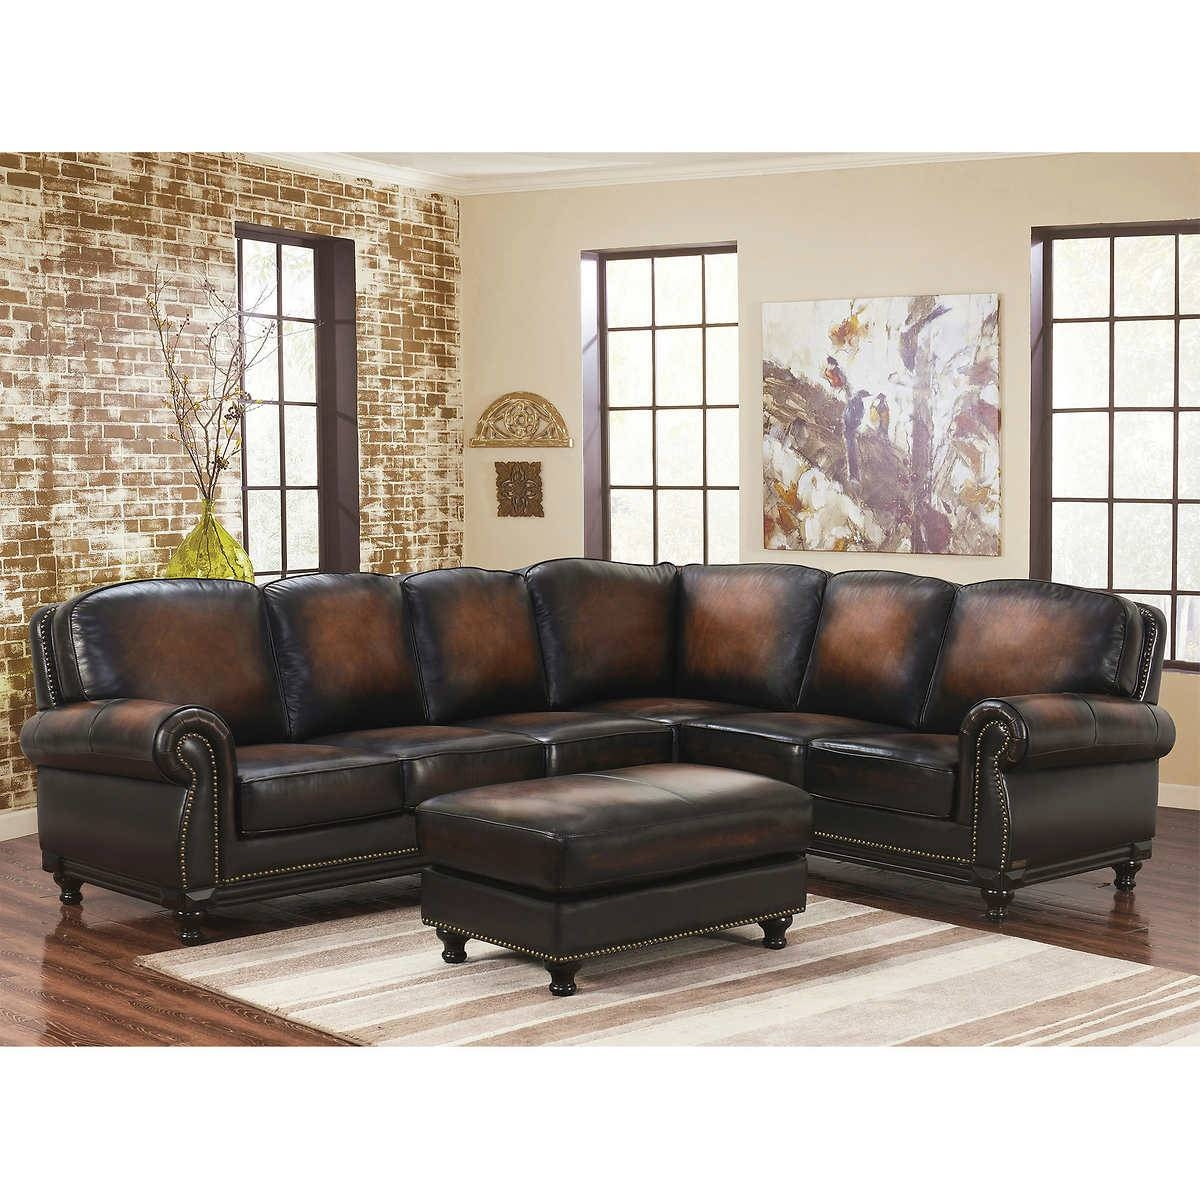 Remarkable Turquoise Leather Sectional Sofa 58 About Remodel for Abbyson Living Charlotte Beige Sectional Sofa And Ottoman (Image 26 of 30)